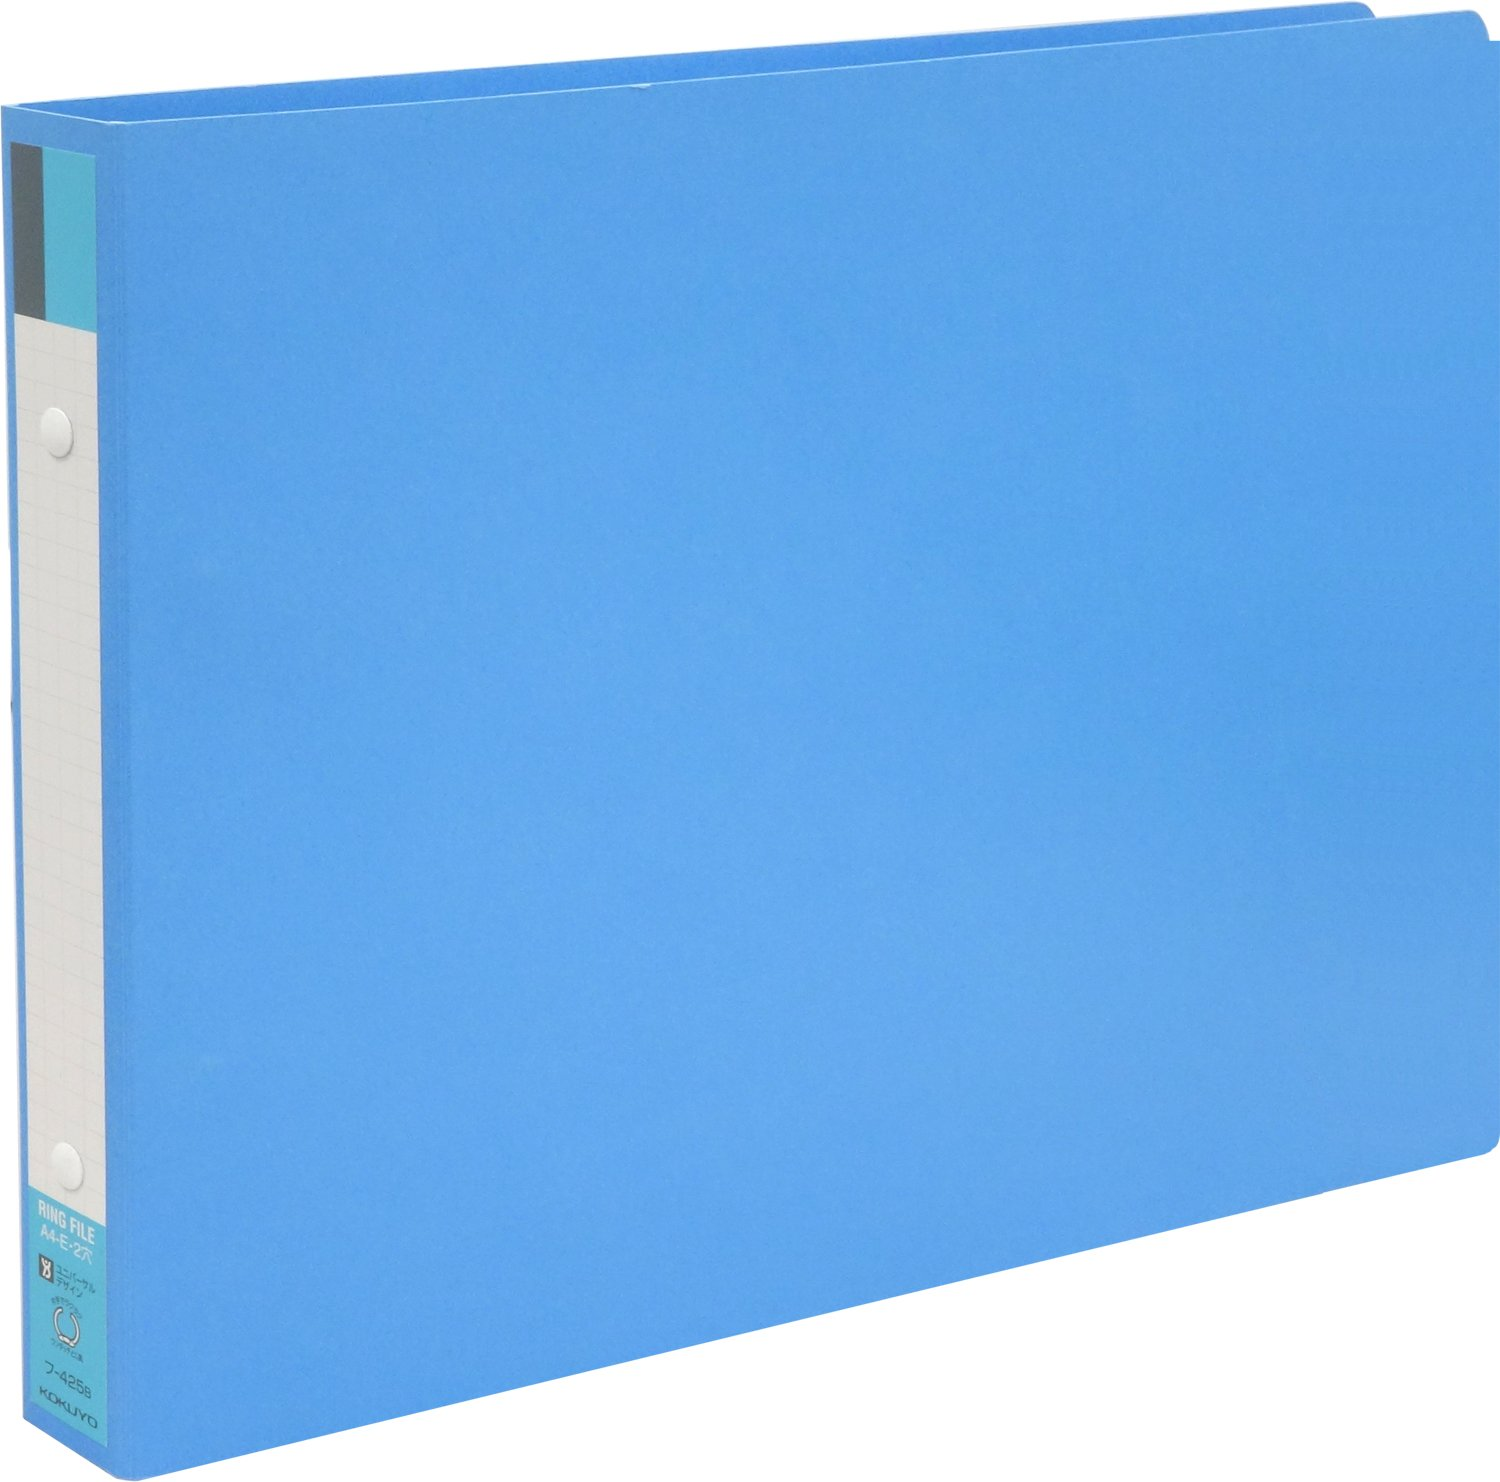 Kokuyo S & T board cover ring file A4 landscape blue 30mm (japan import) Kokuyo Co. Ltd. フ-425NB